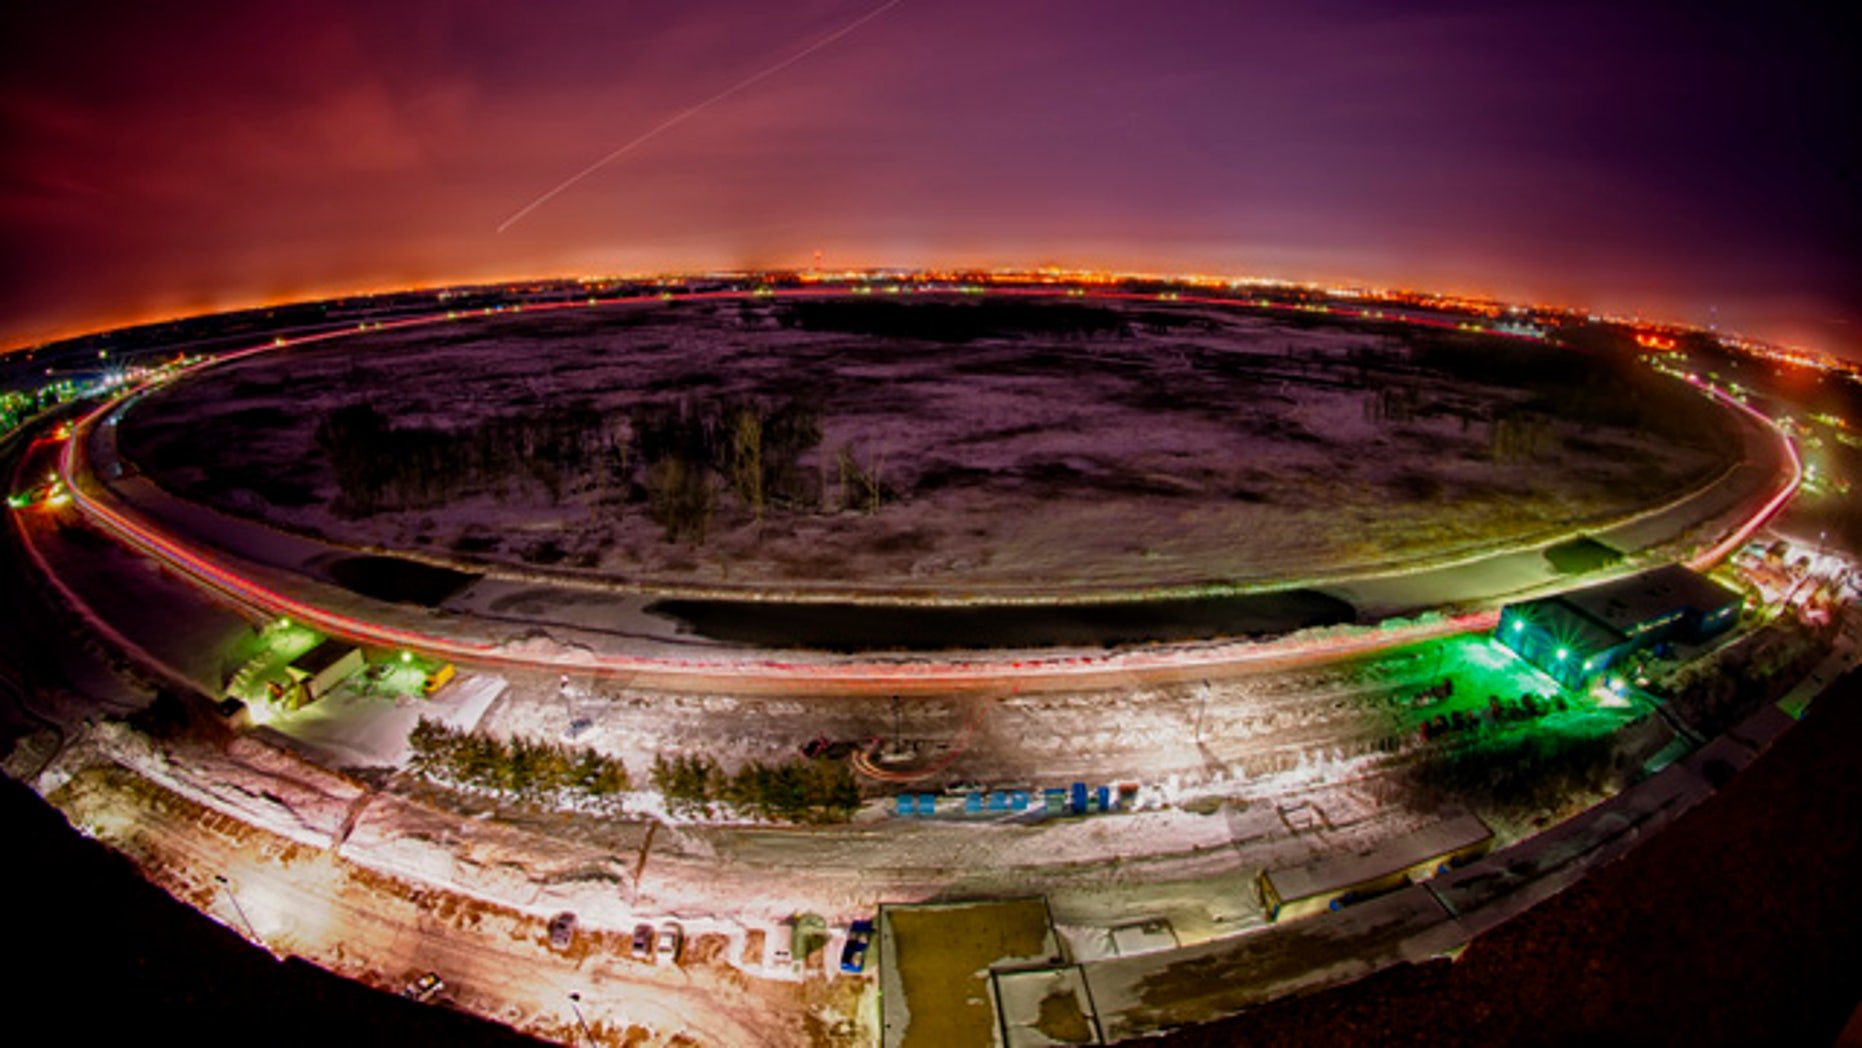 The 4-mile in circumference Tevatron accelerator uses superconducting magnets chilled to minus 450 degrees Fahrenheit, as cold as outer space, to move particles at nearly the speed of light.